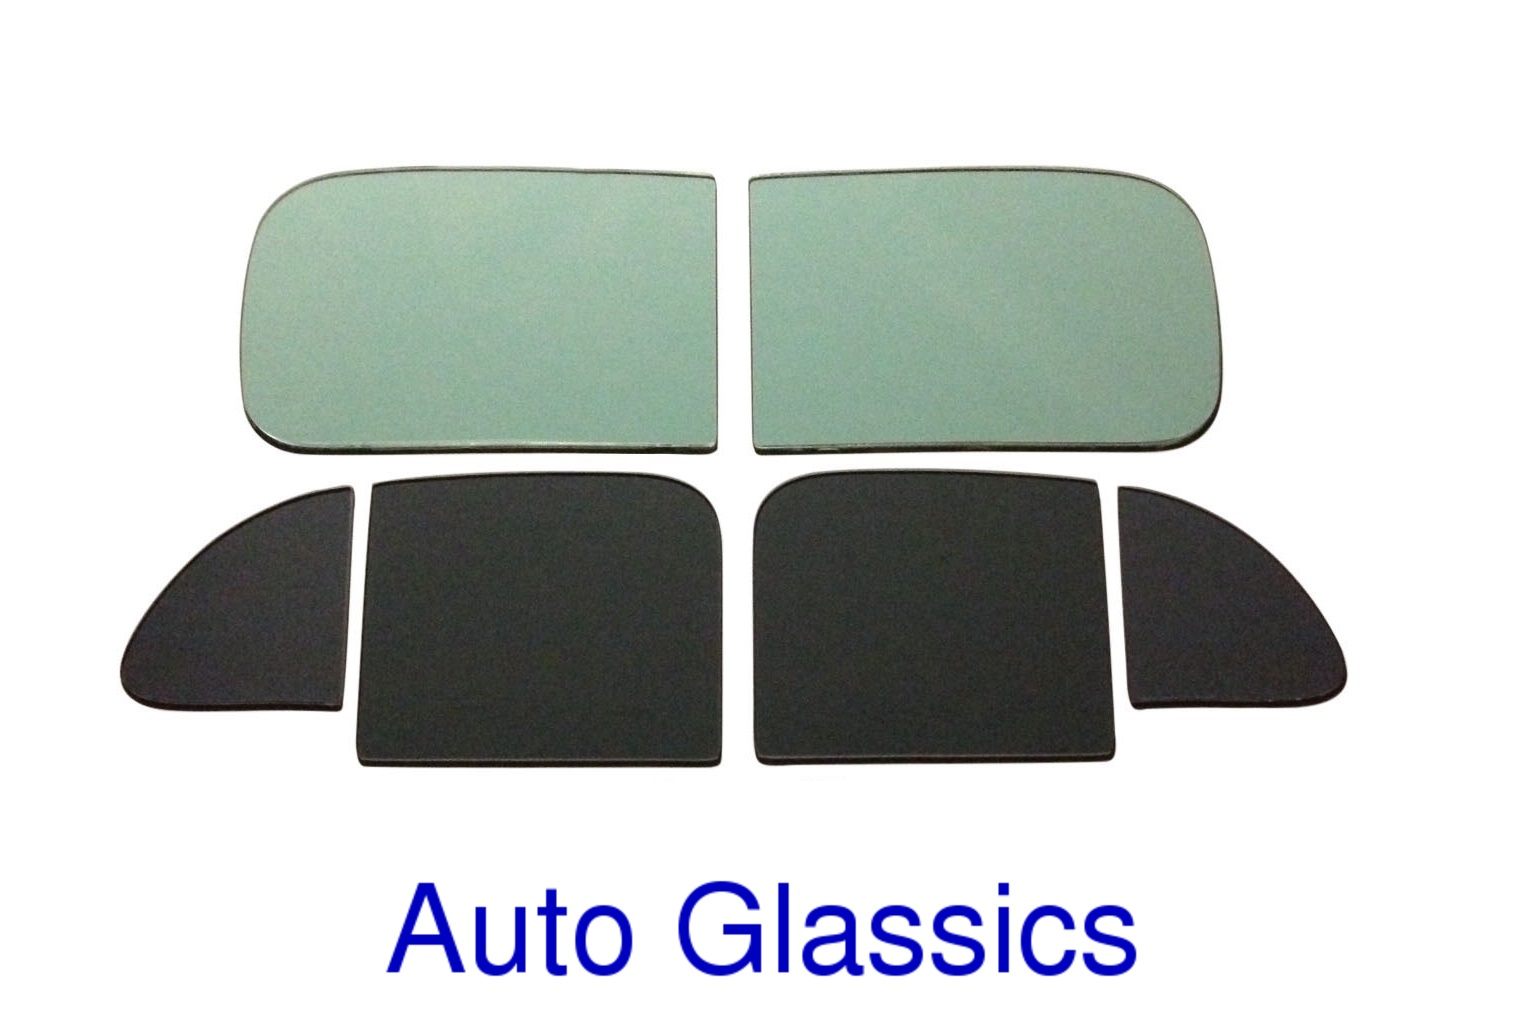 1949 1950 plymouth business coupe p17 p19 flat glass kit for 1950 plymouth 3 window business coupe